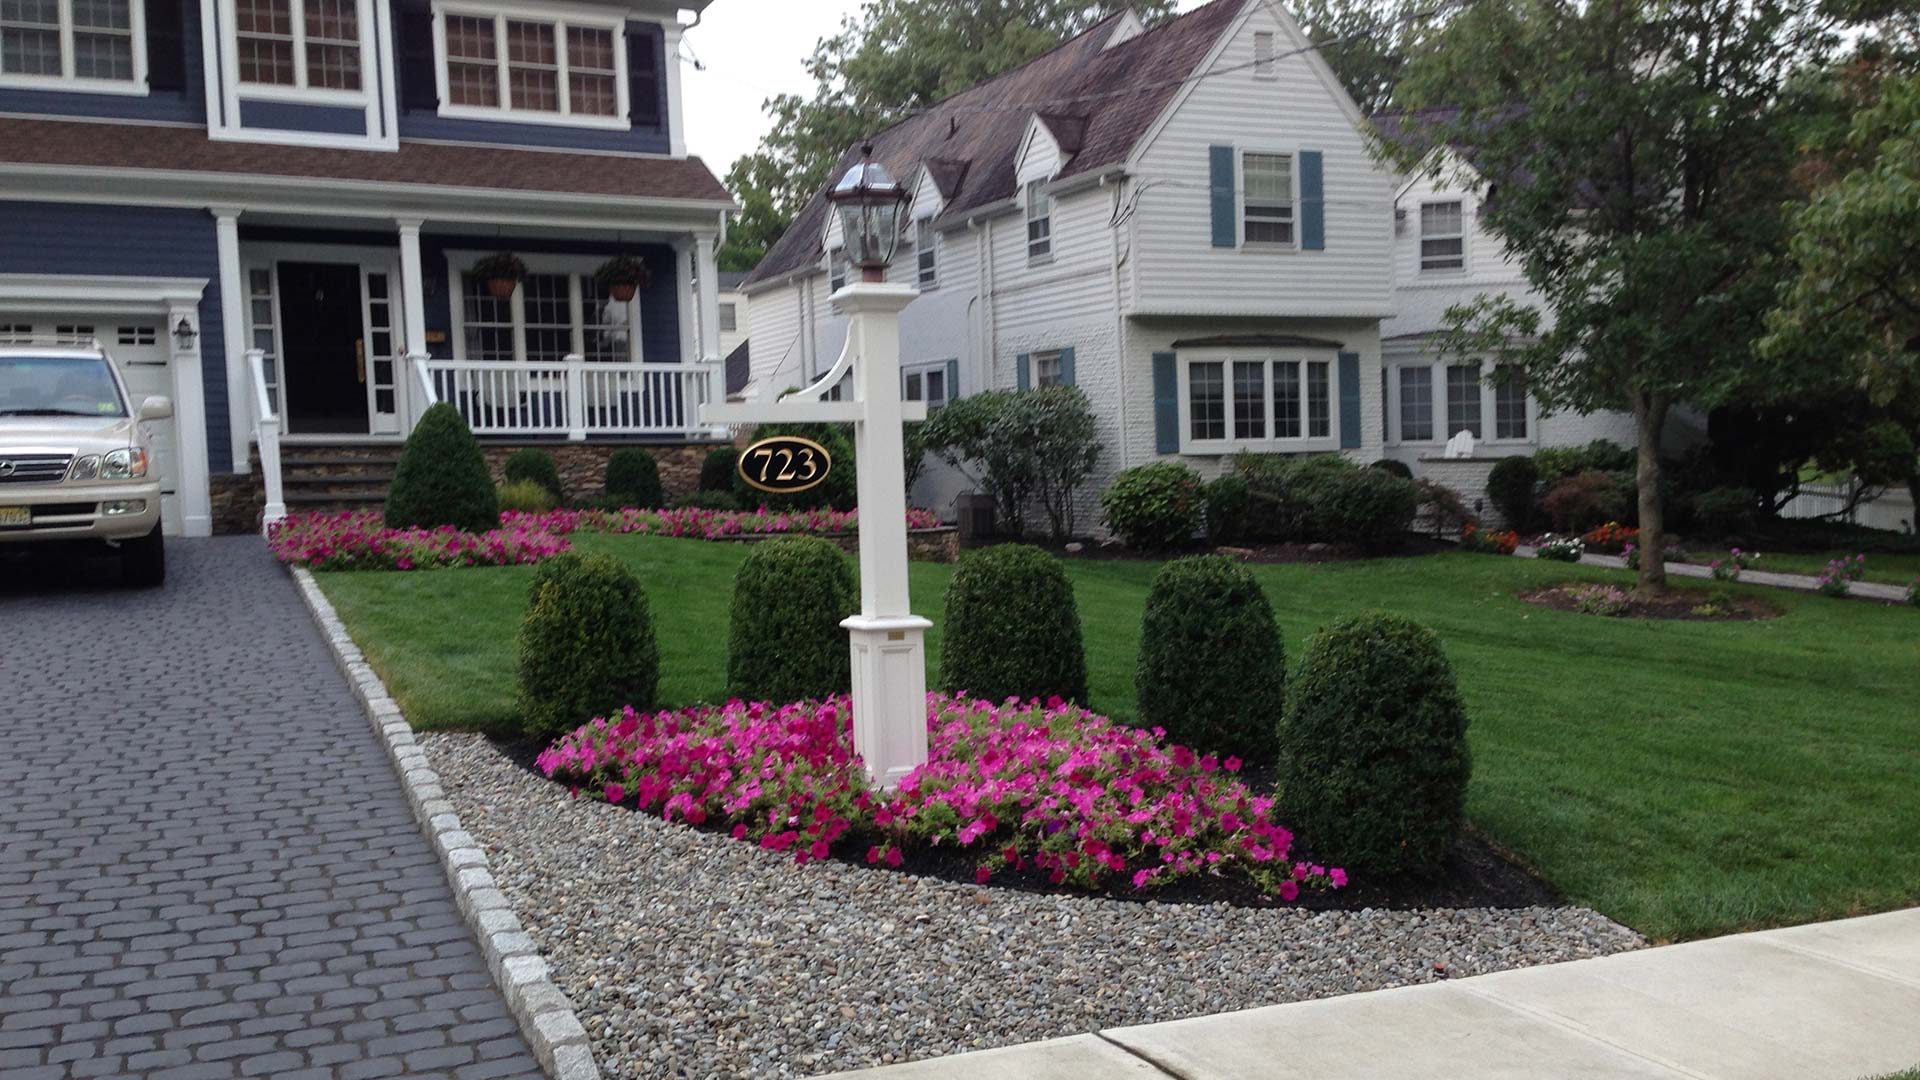 This customer has properly trimmed and pruned shrubs courtesy of our experienced professionals.